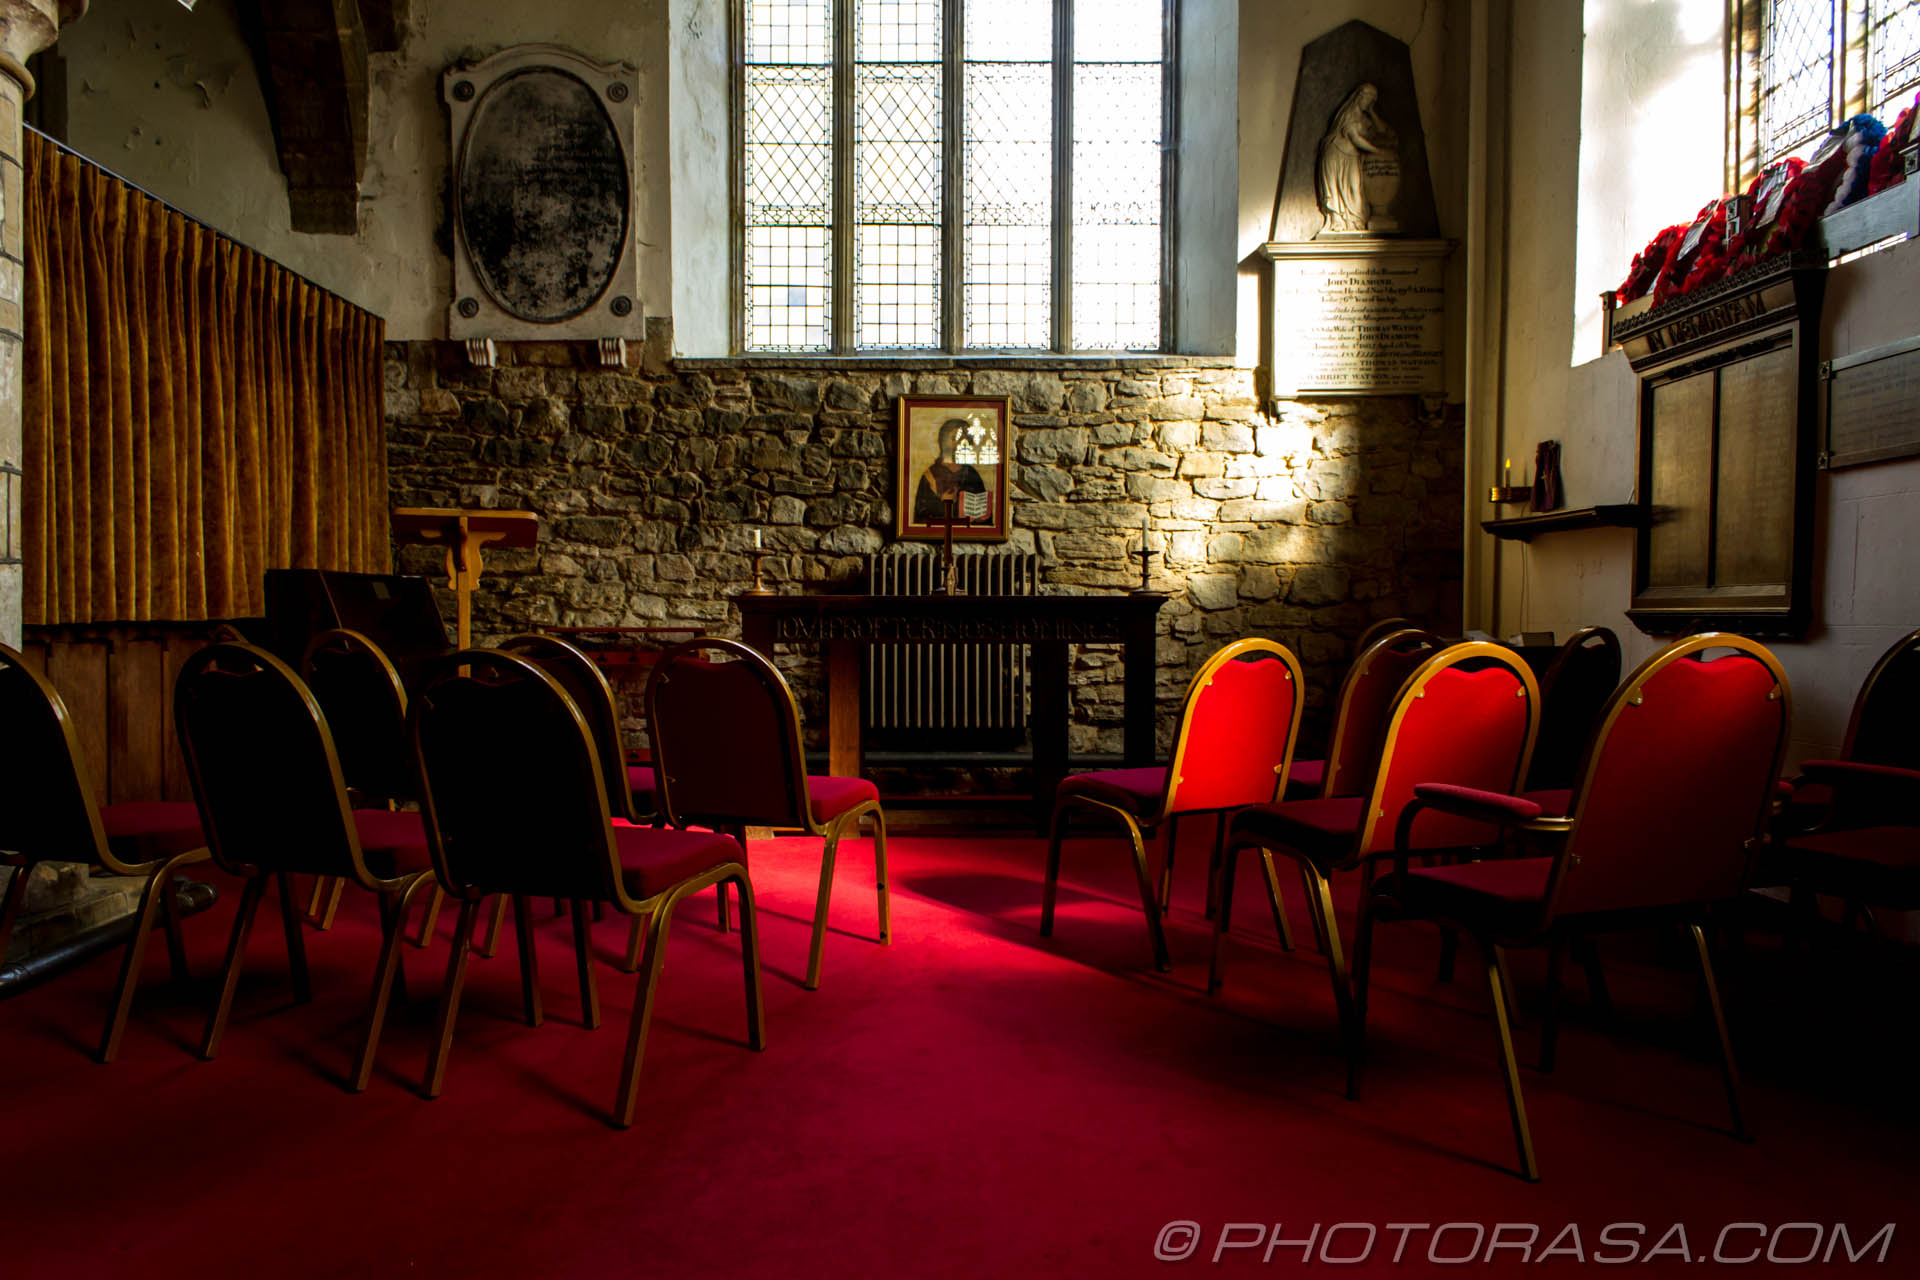 http://photorasa.com/saints-church-staplehurst-kent/meeting-area-for-group-prayer/